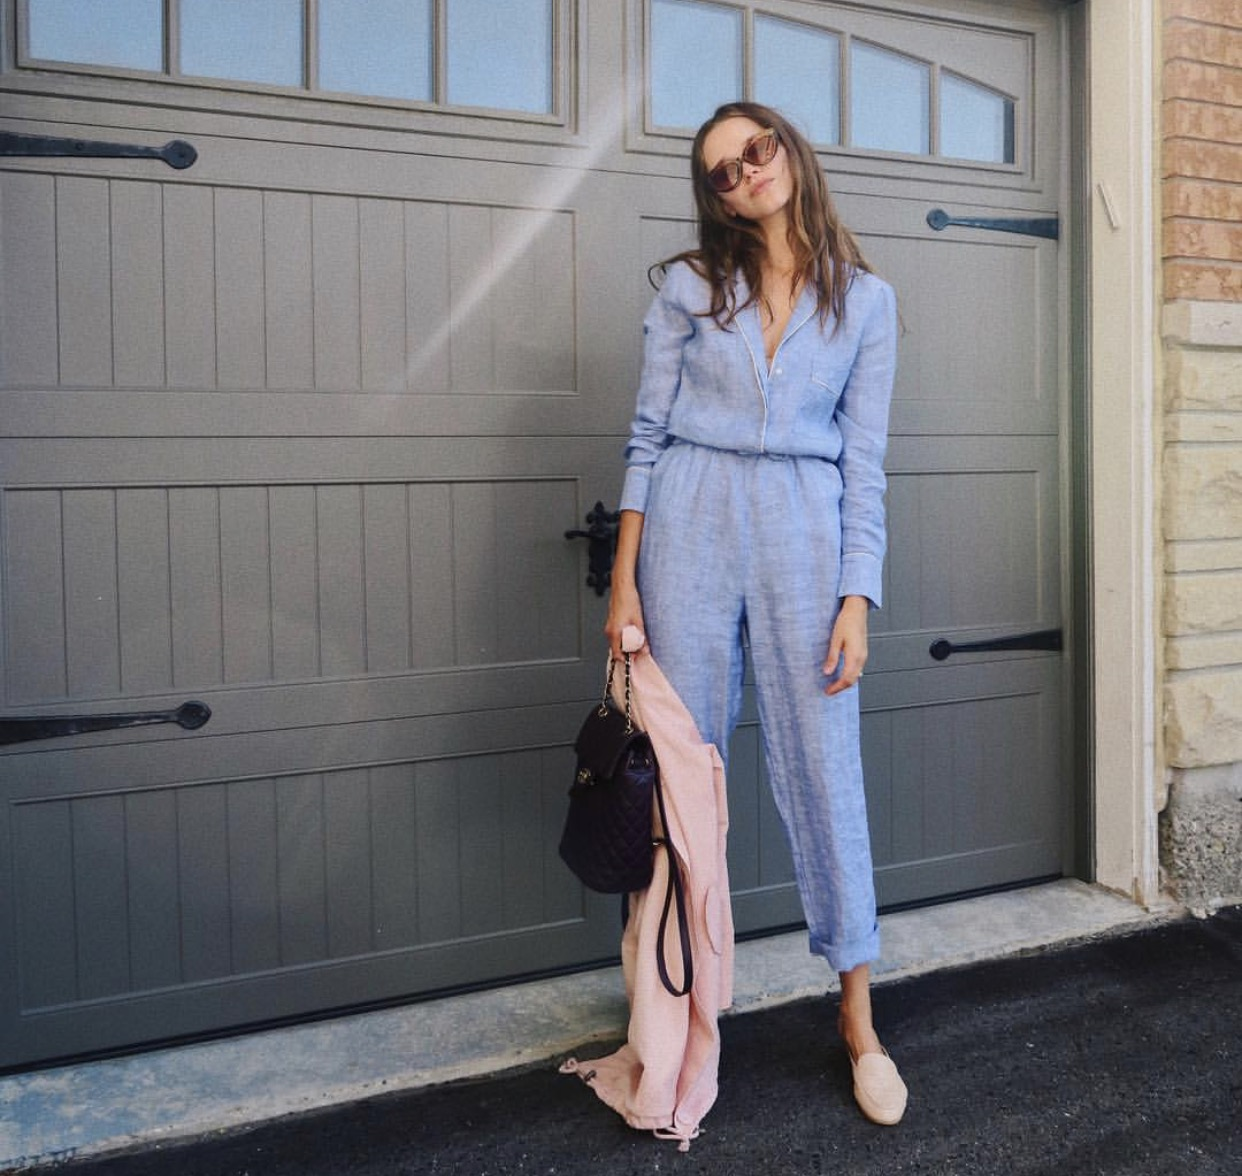 Jumpsuit: Zara (old), similar  HERE , HERE or  HERE | Mules: UO (old), similar  HERE | Jacket: Forever 21 (old), similar  HERE | Sunglasses: vintage